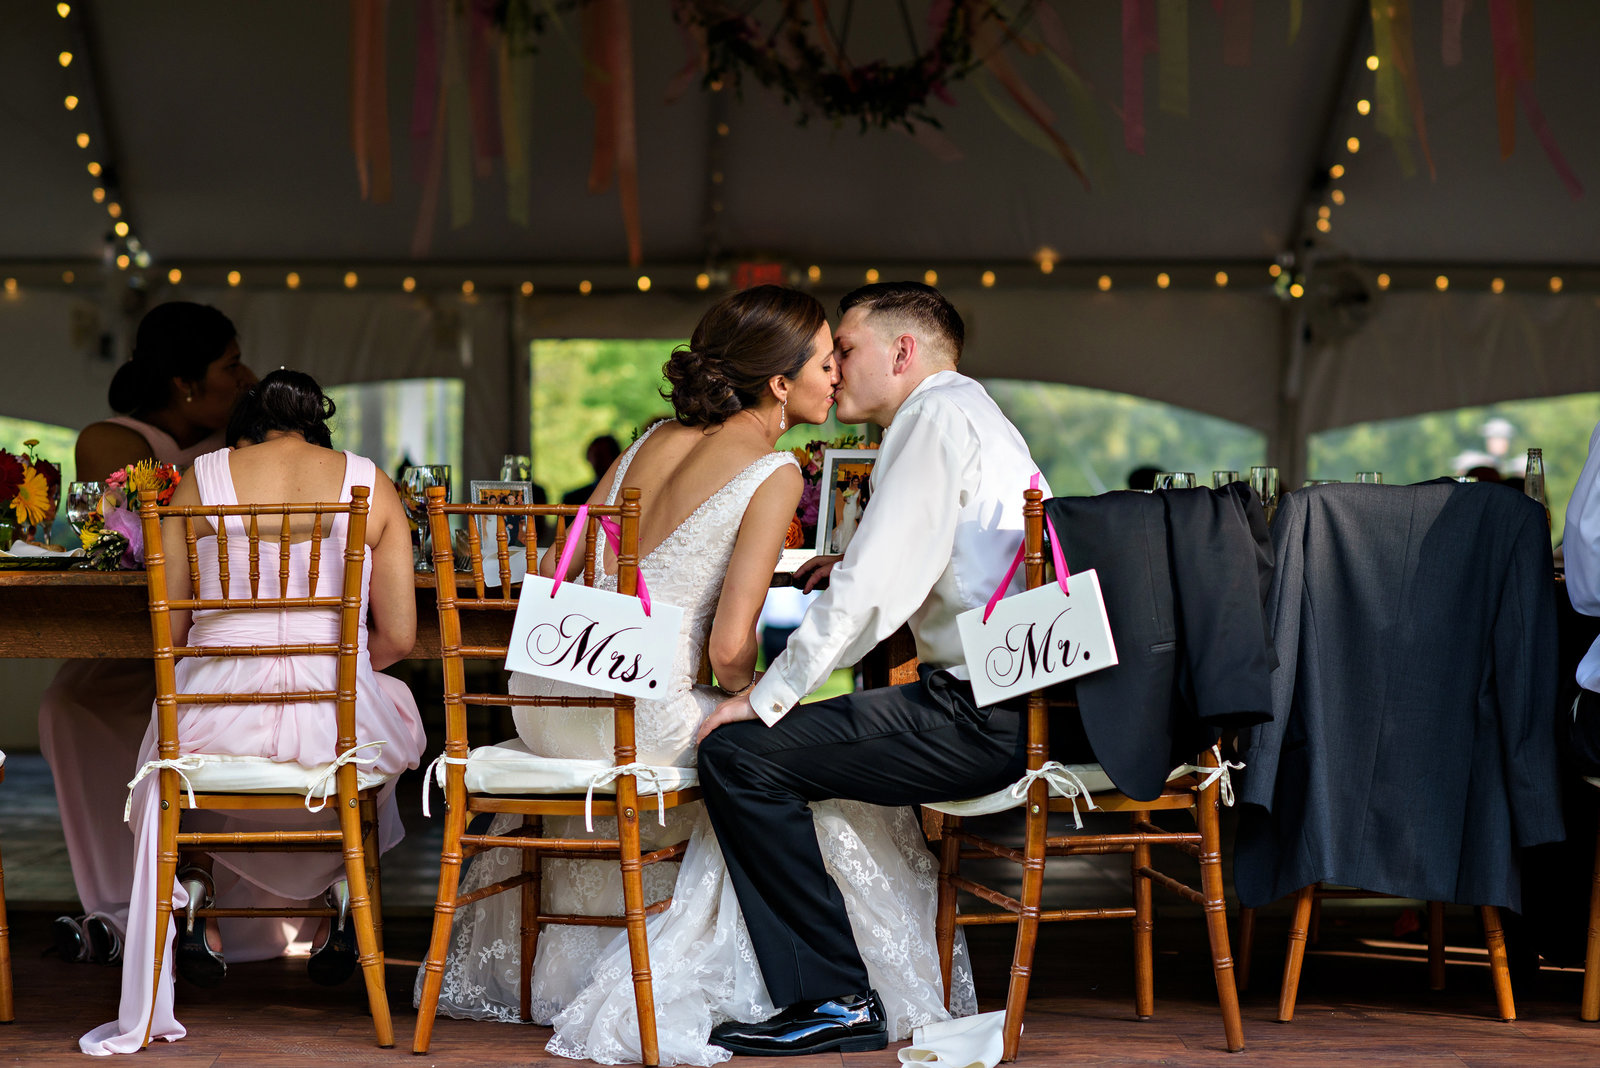 A bride and groom kiss at their wedding table during the reception at Pearl S Buck Estate.